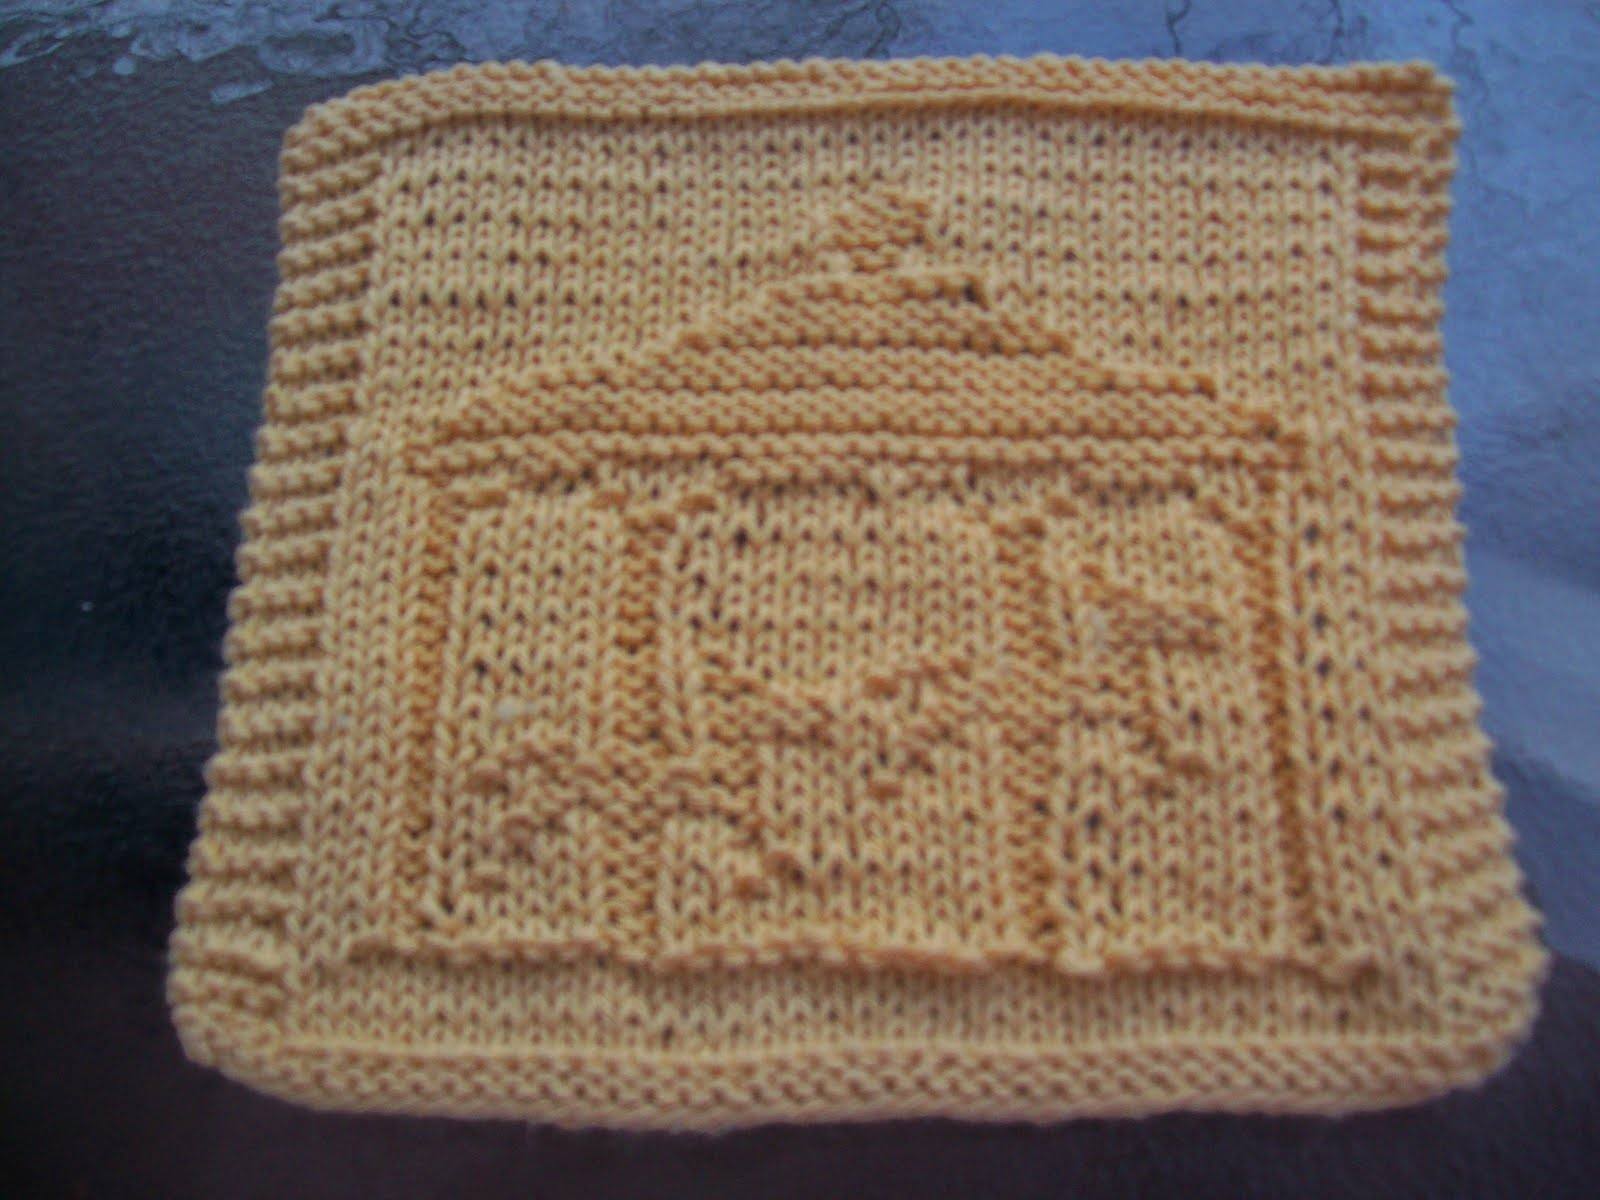 Knit Dishcloth Pattern Horse : DigKnitty Designs: Carousel Knit Dishcloth Pattern